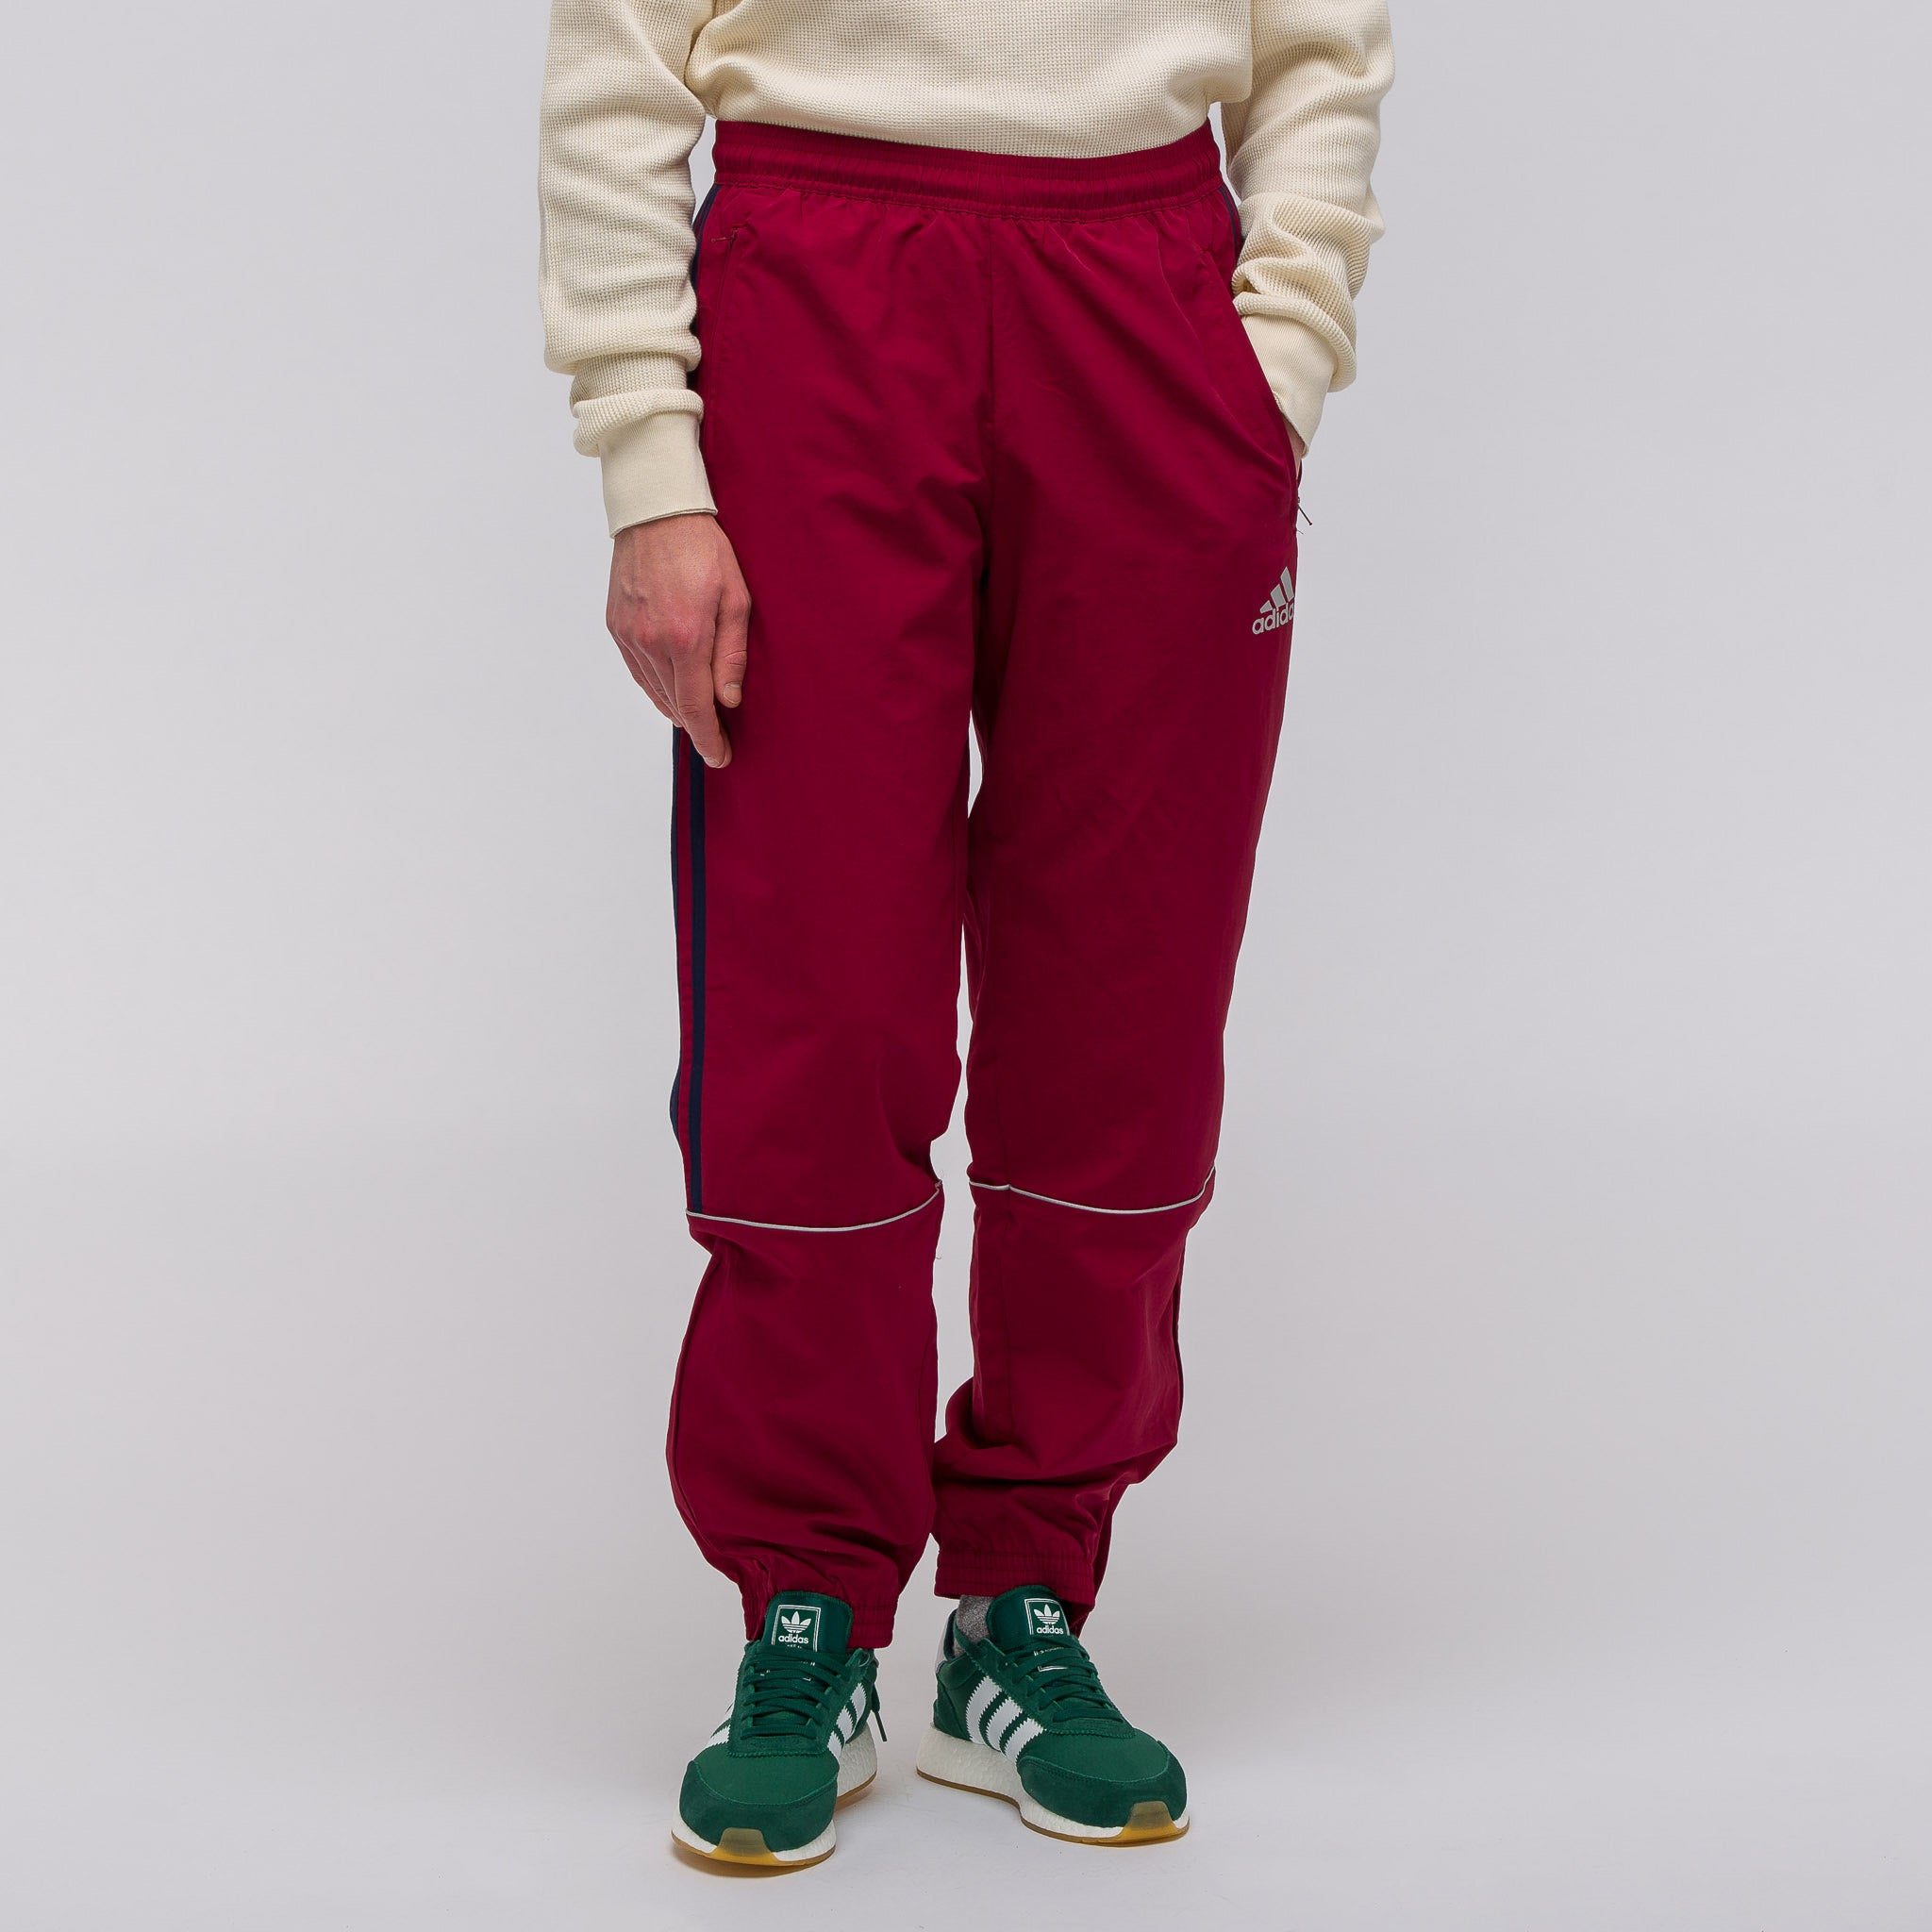 Discount Gosha Rubchinskiy Gosha Rubchinskiy x Adidas logo trackpants Find Great Sale Online Find Great Cheap And Nice Reliable jsnL75bj